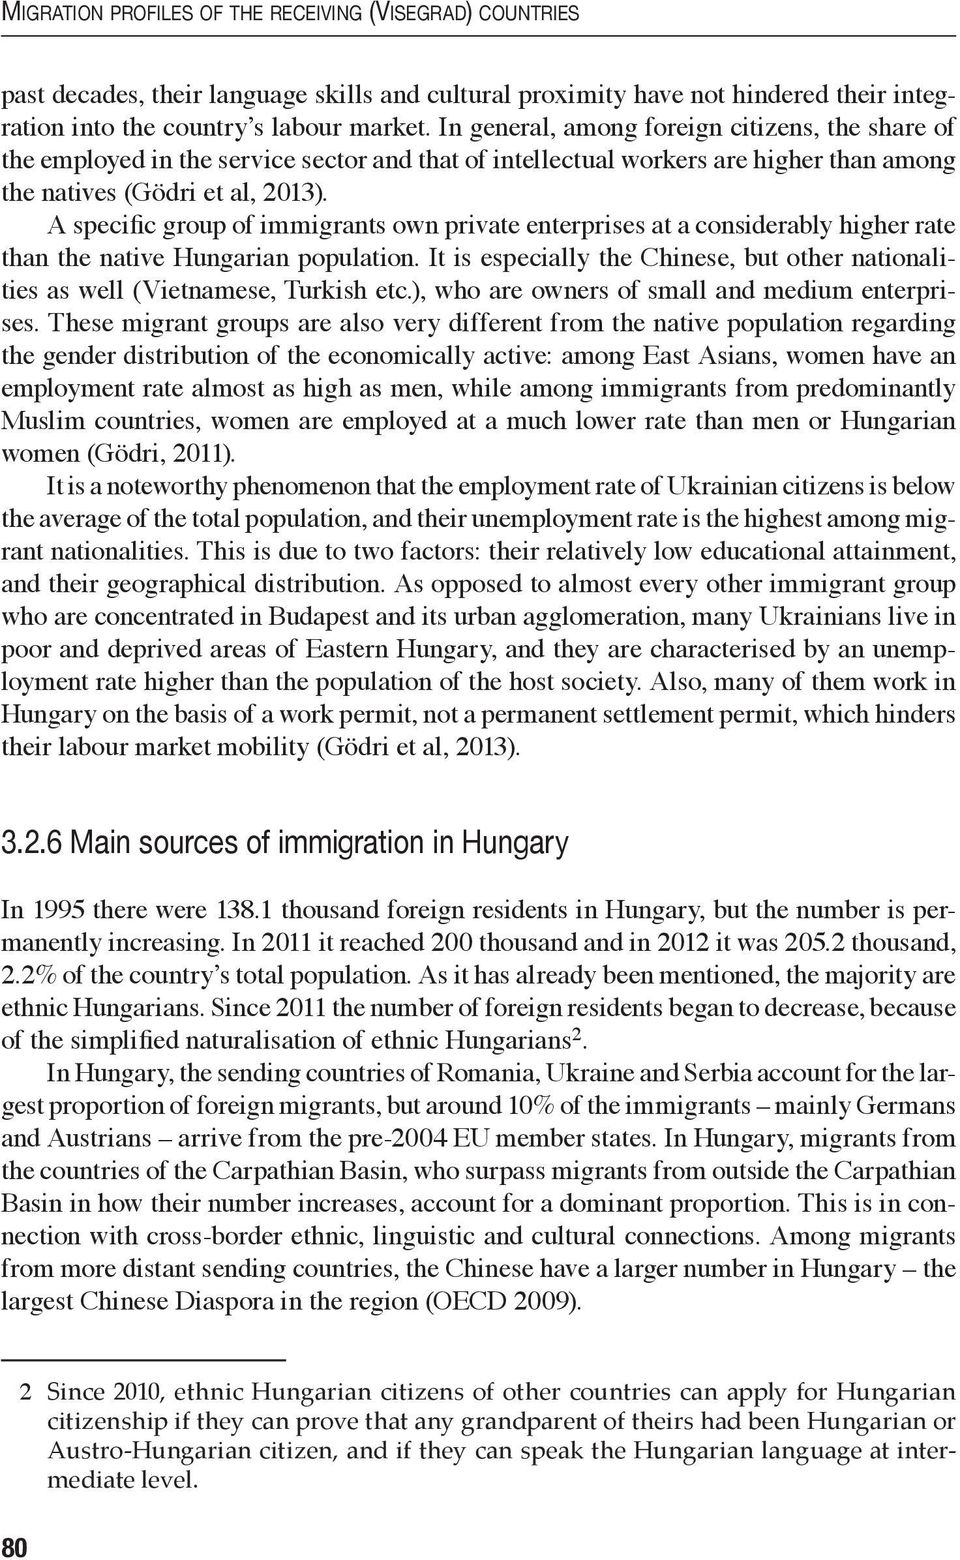 A specific group of immigrants own private enterprises at a considerably higher rate than the native Hungarian population.